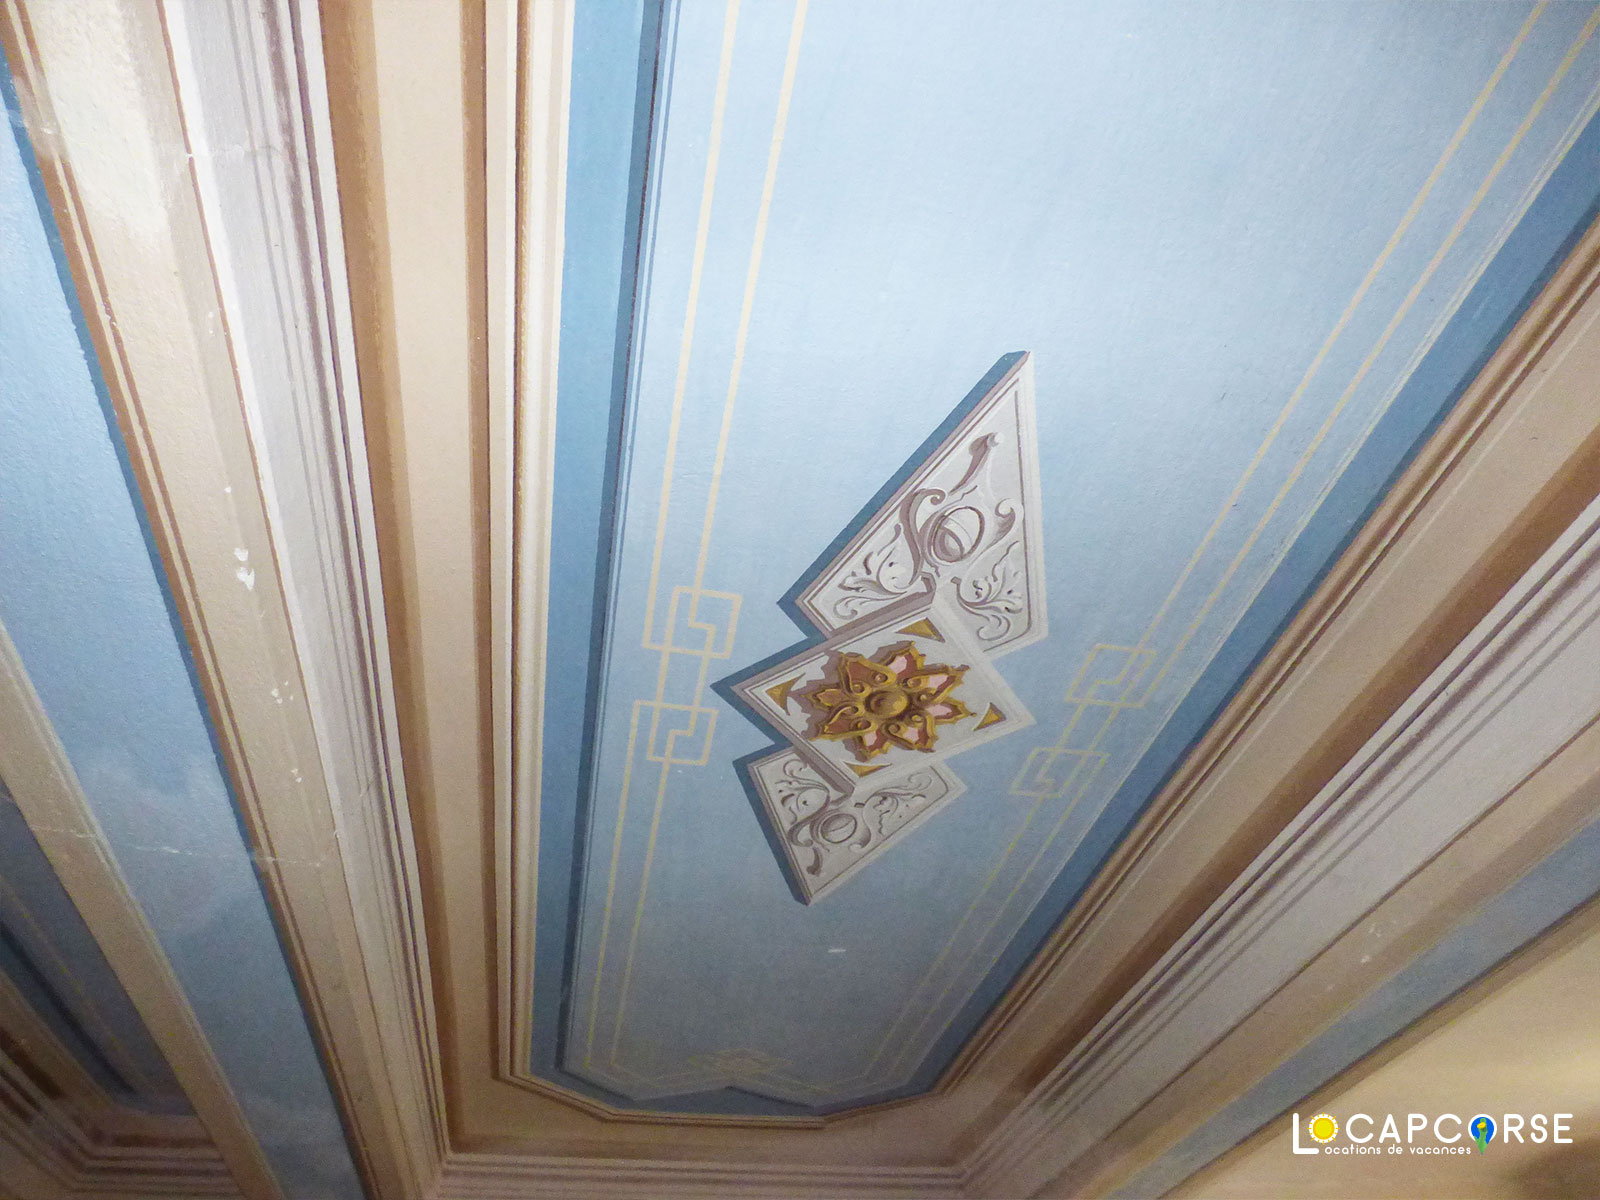 Locations Cap Corse - The painted ceiling of the office